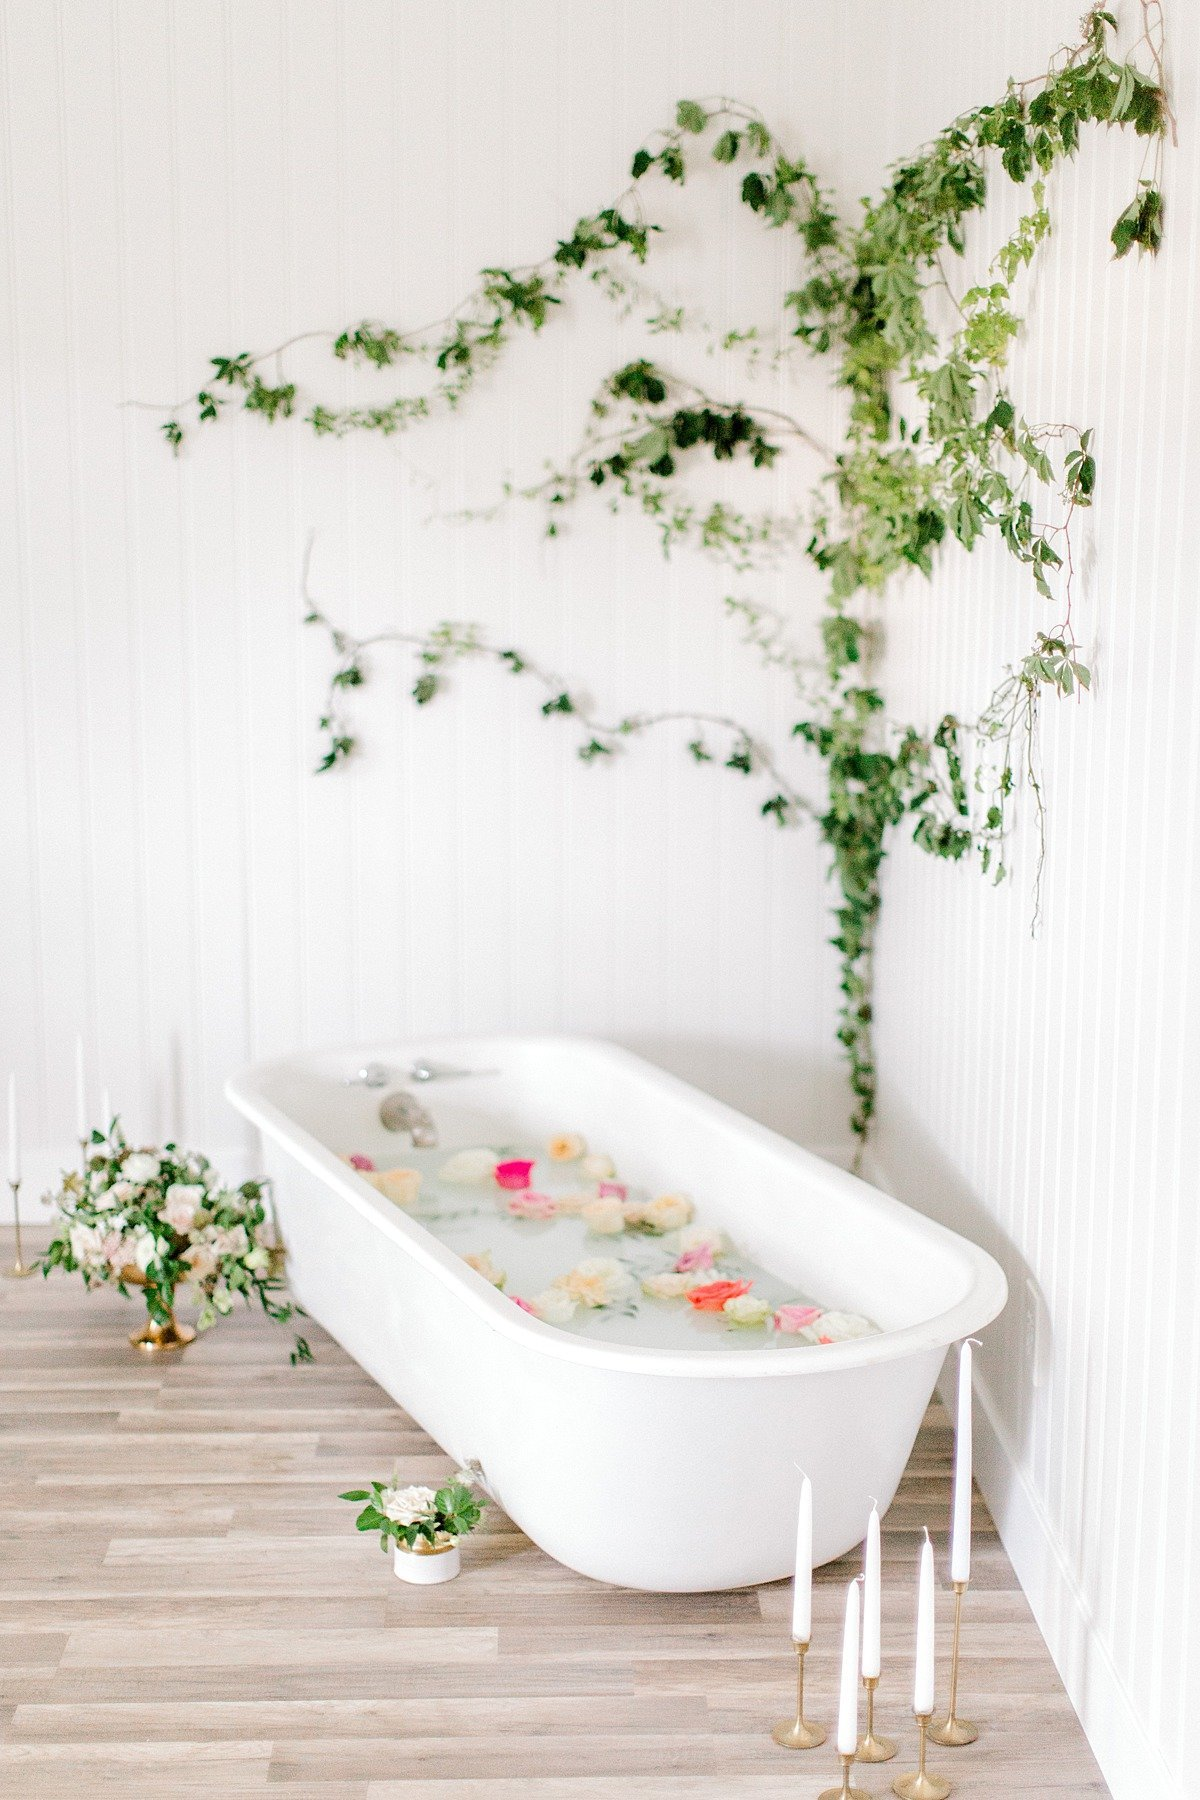 Fine Art Milk Bath Boudoir BHLDN Asos Lingerie VA Beach Studio Photographer Yours Truly Portraiture-15